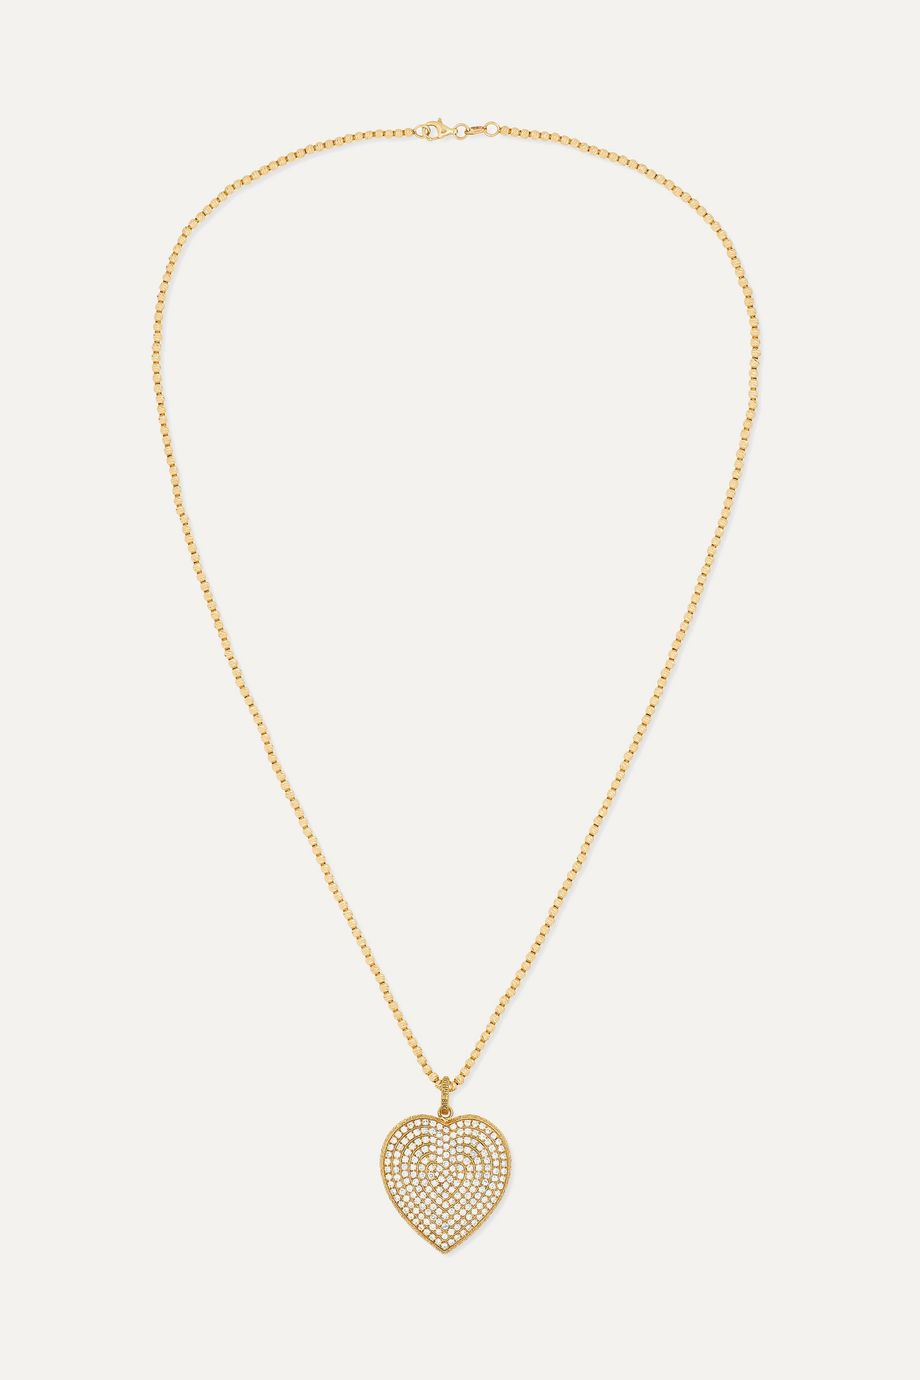 Carolina Bucci Florentine 18-karat gold diamond necklace